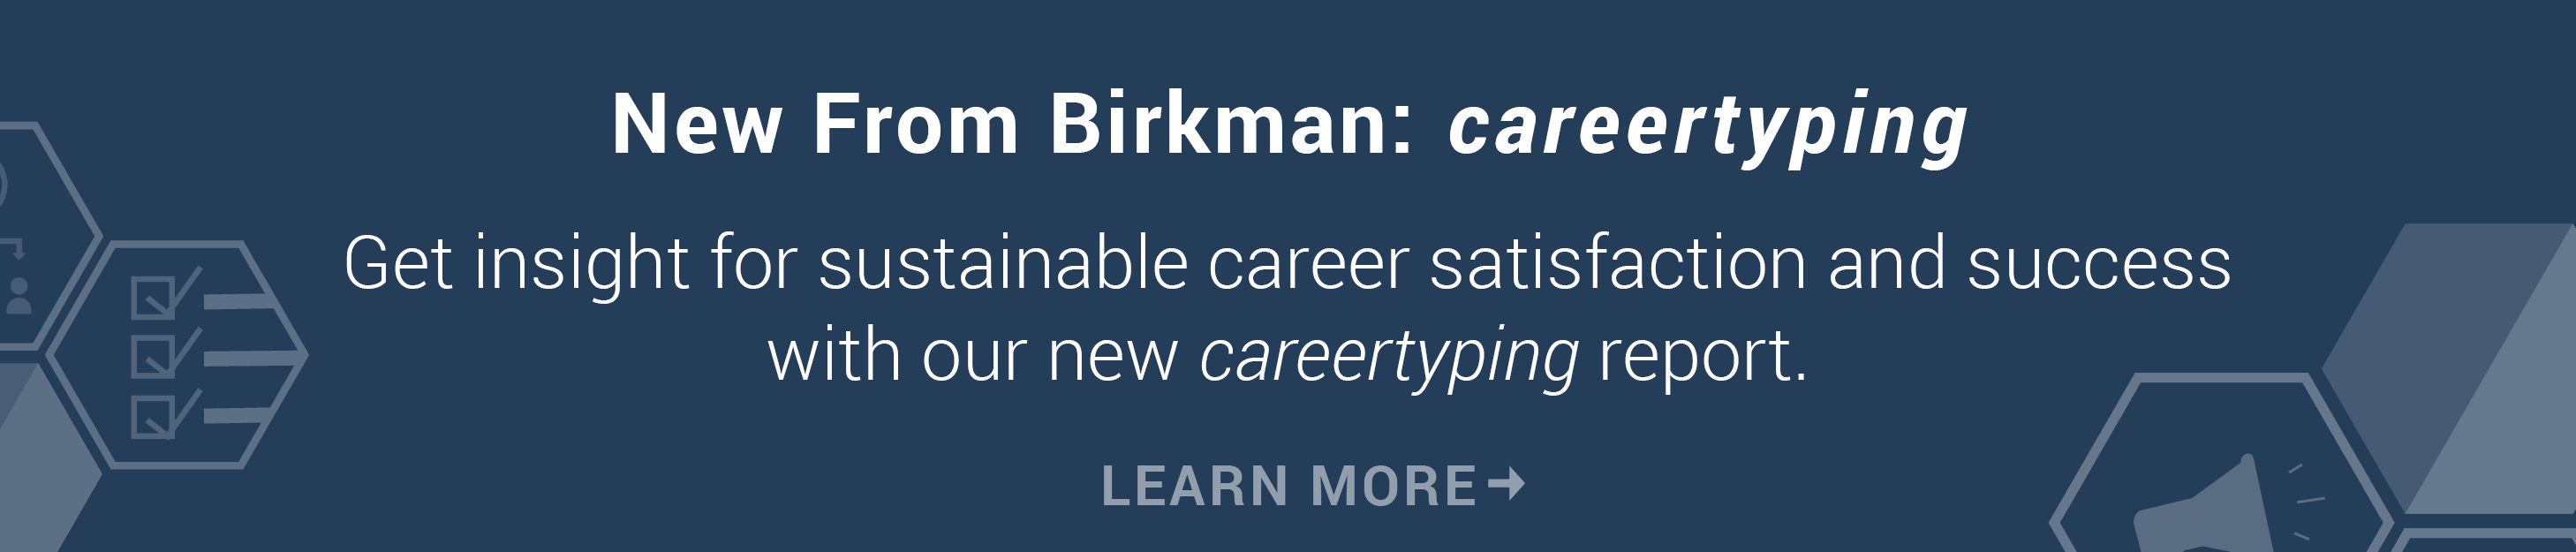 New from Birkman: careertyping Report